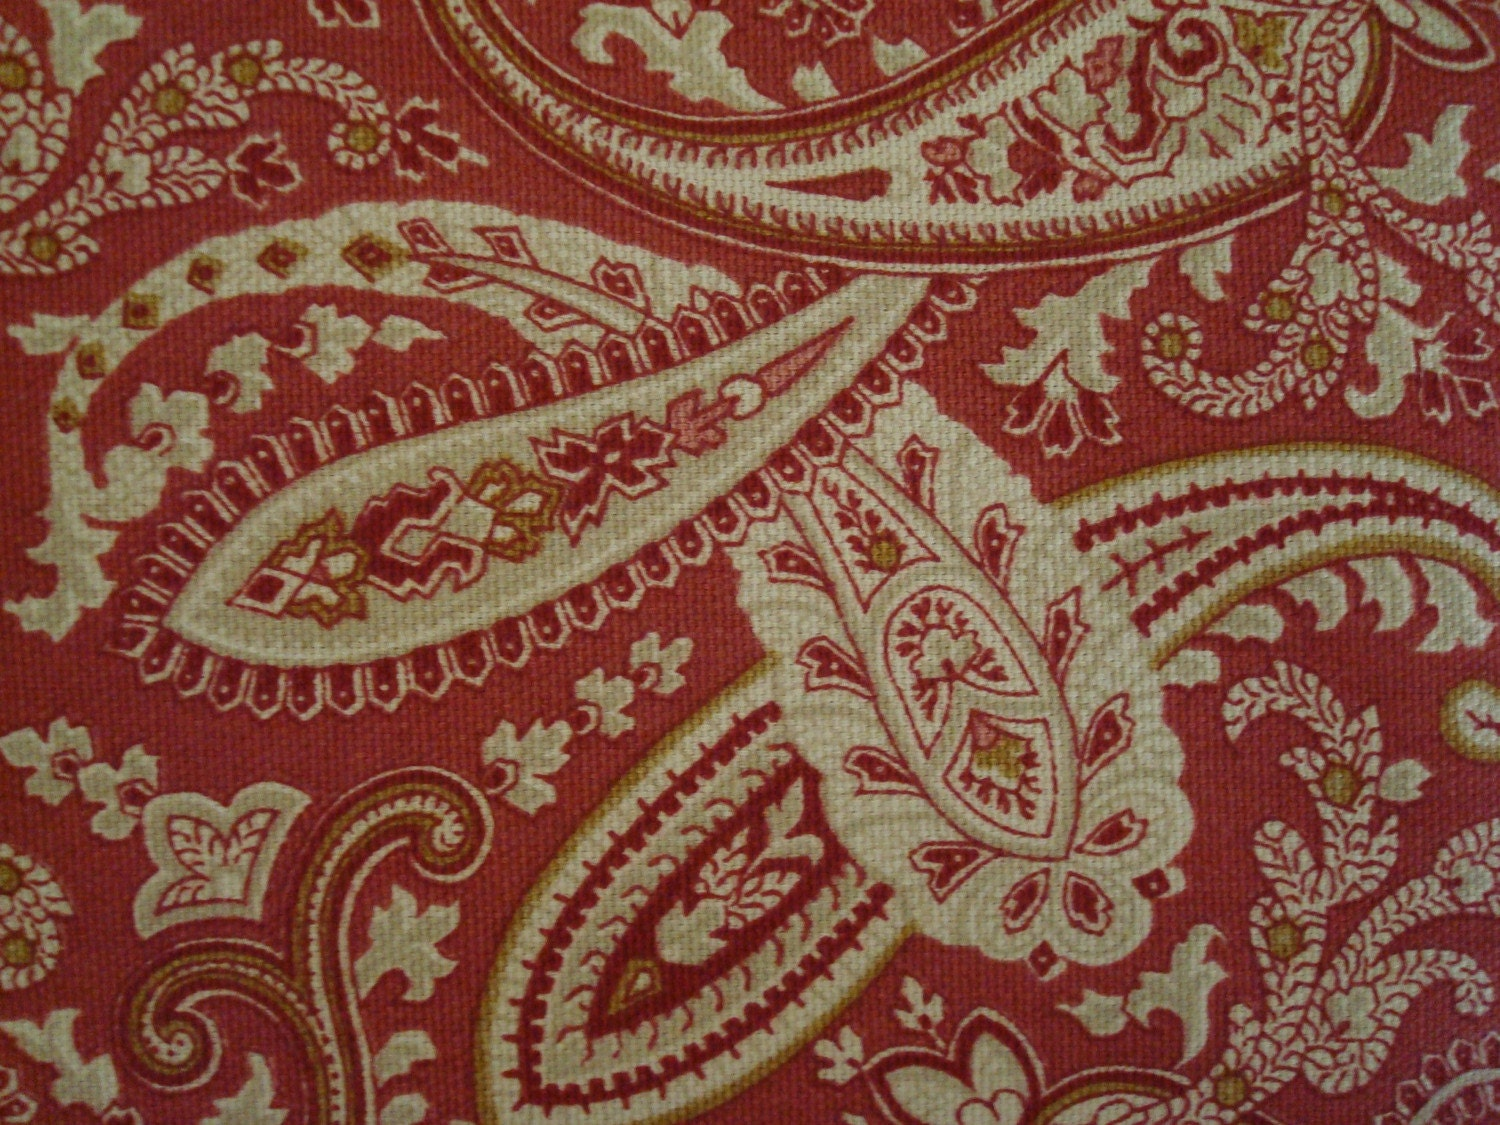 Cotton Upholstery Fabric, Paisley Deep Rose Pink Fabric, 2 Yards